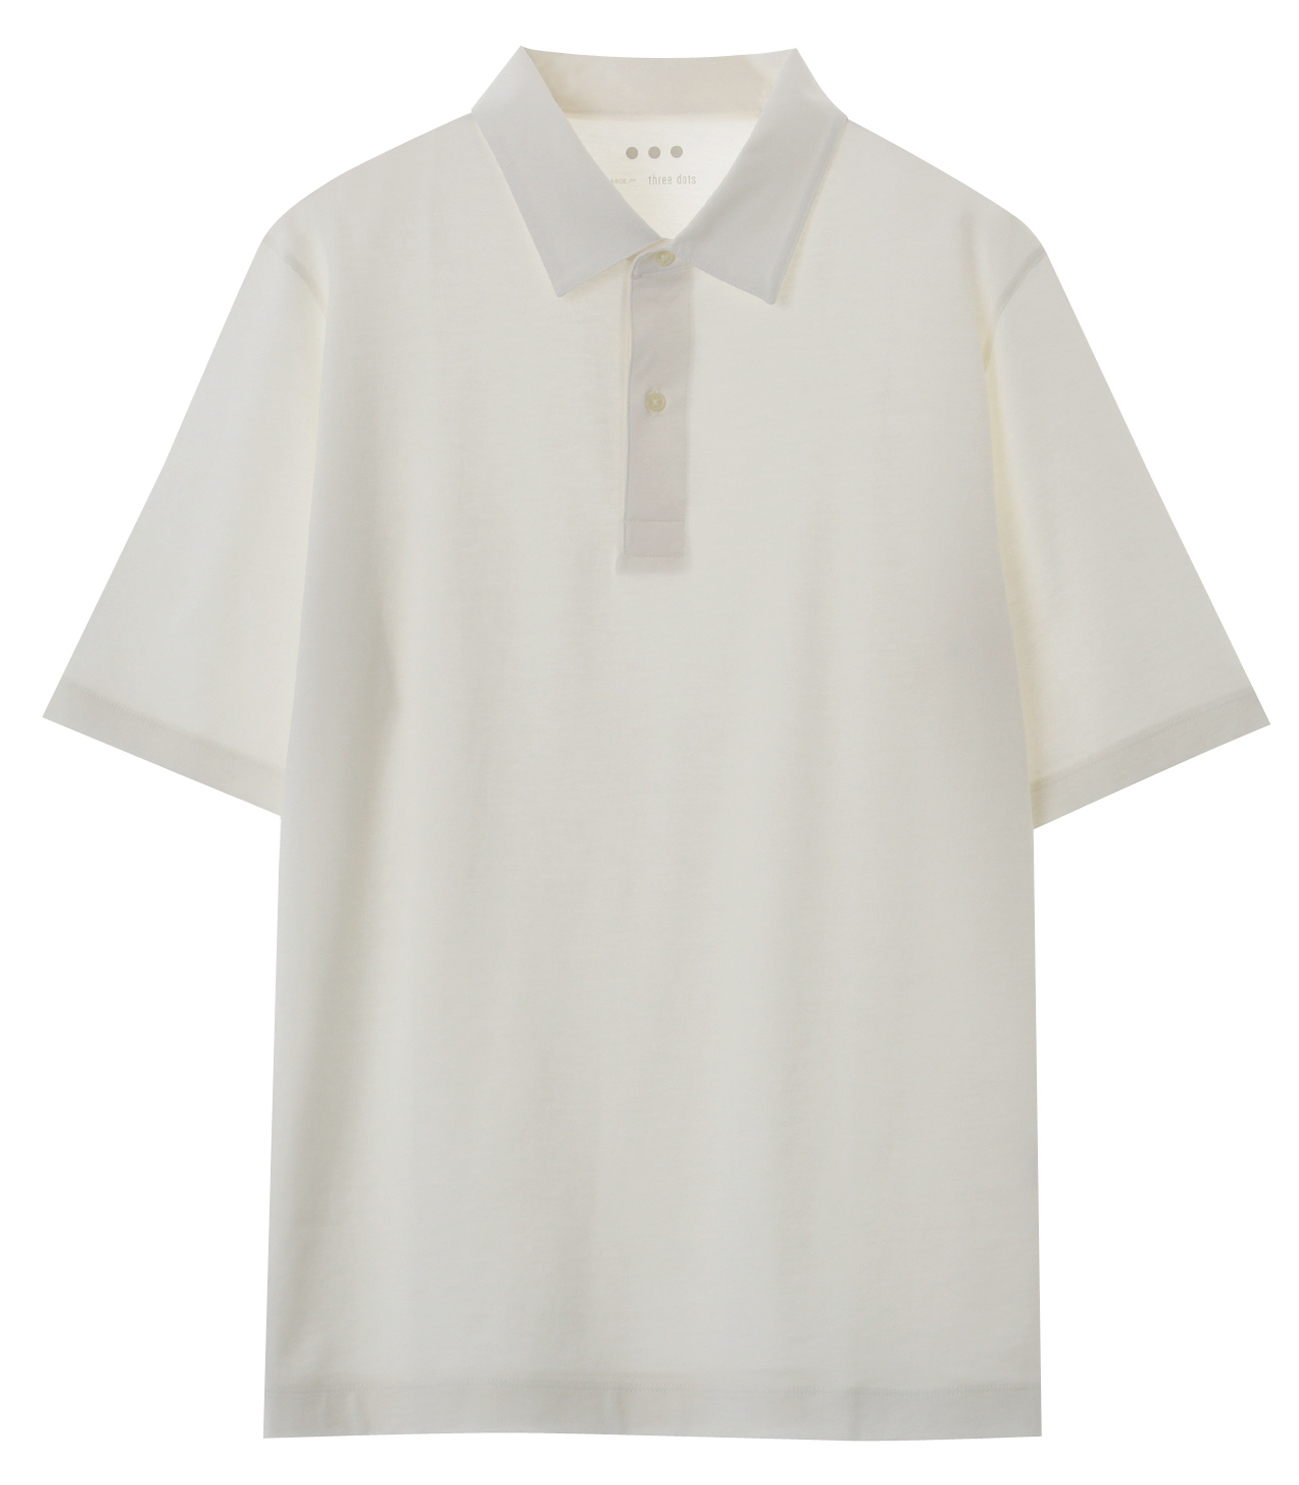 Men's cotton cashmere s/s polo 詳細画像 ivory 1